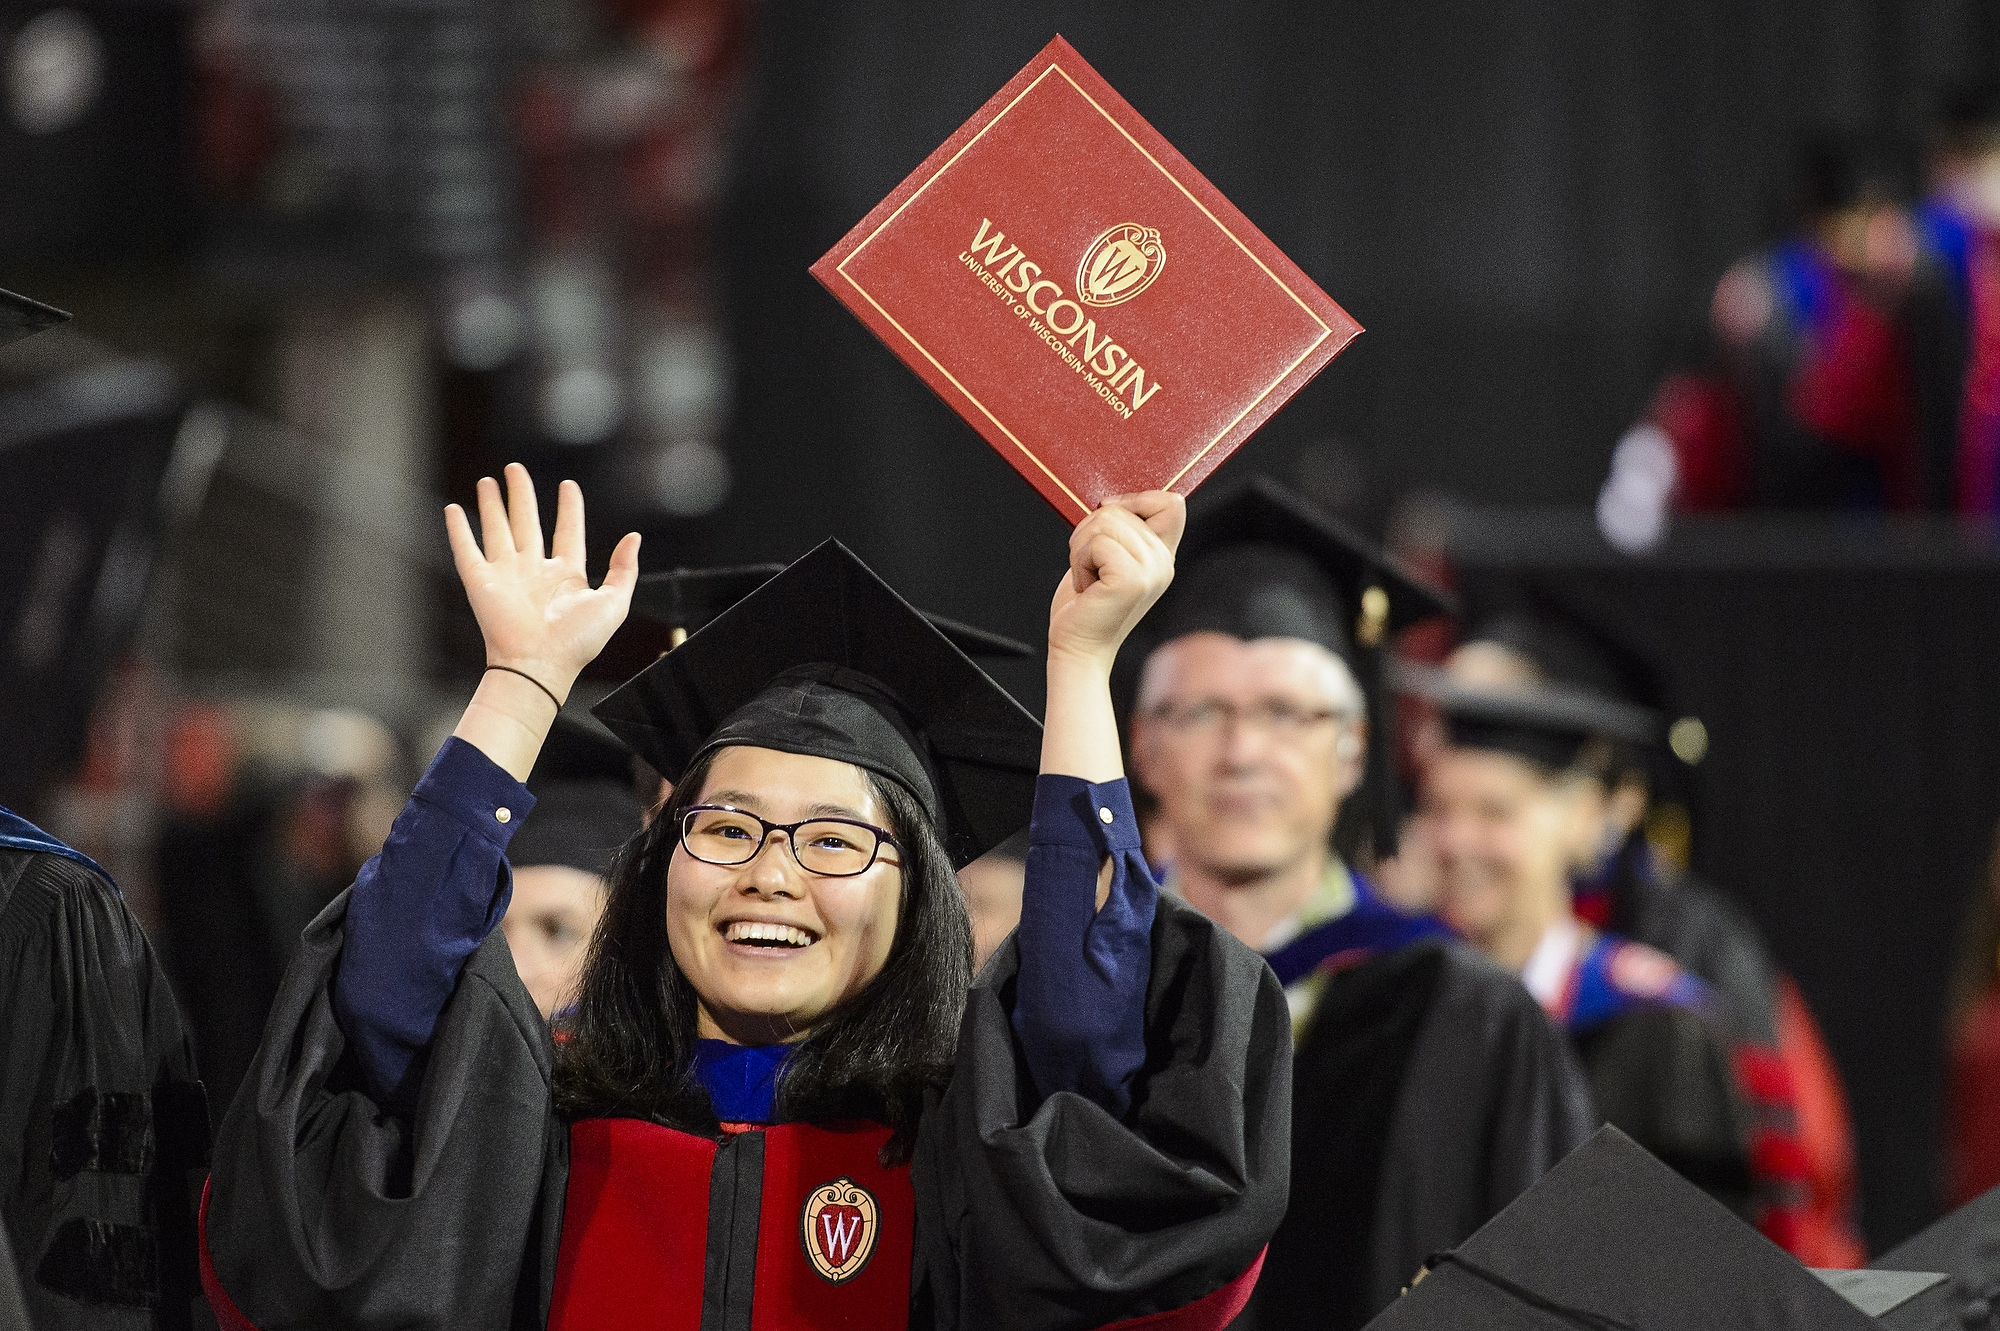 A graduate holds up her diploma cover to show family during UW–Madison's spring commencement ceremony at the Kohl Center at the University of Wisconsin–Madison on May 12, 2017. The indoor graduation was attended by approximately 830 doctoral, MFA and medical student degree candidates, plus their guests. (Photo by Bryce Richter / UW–Madison)